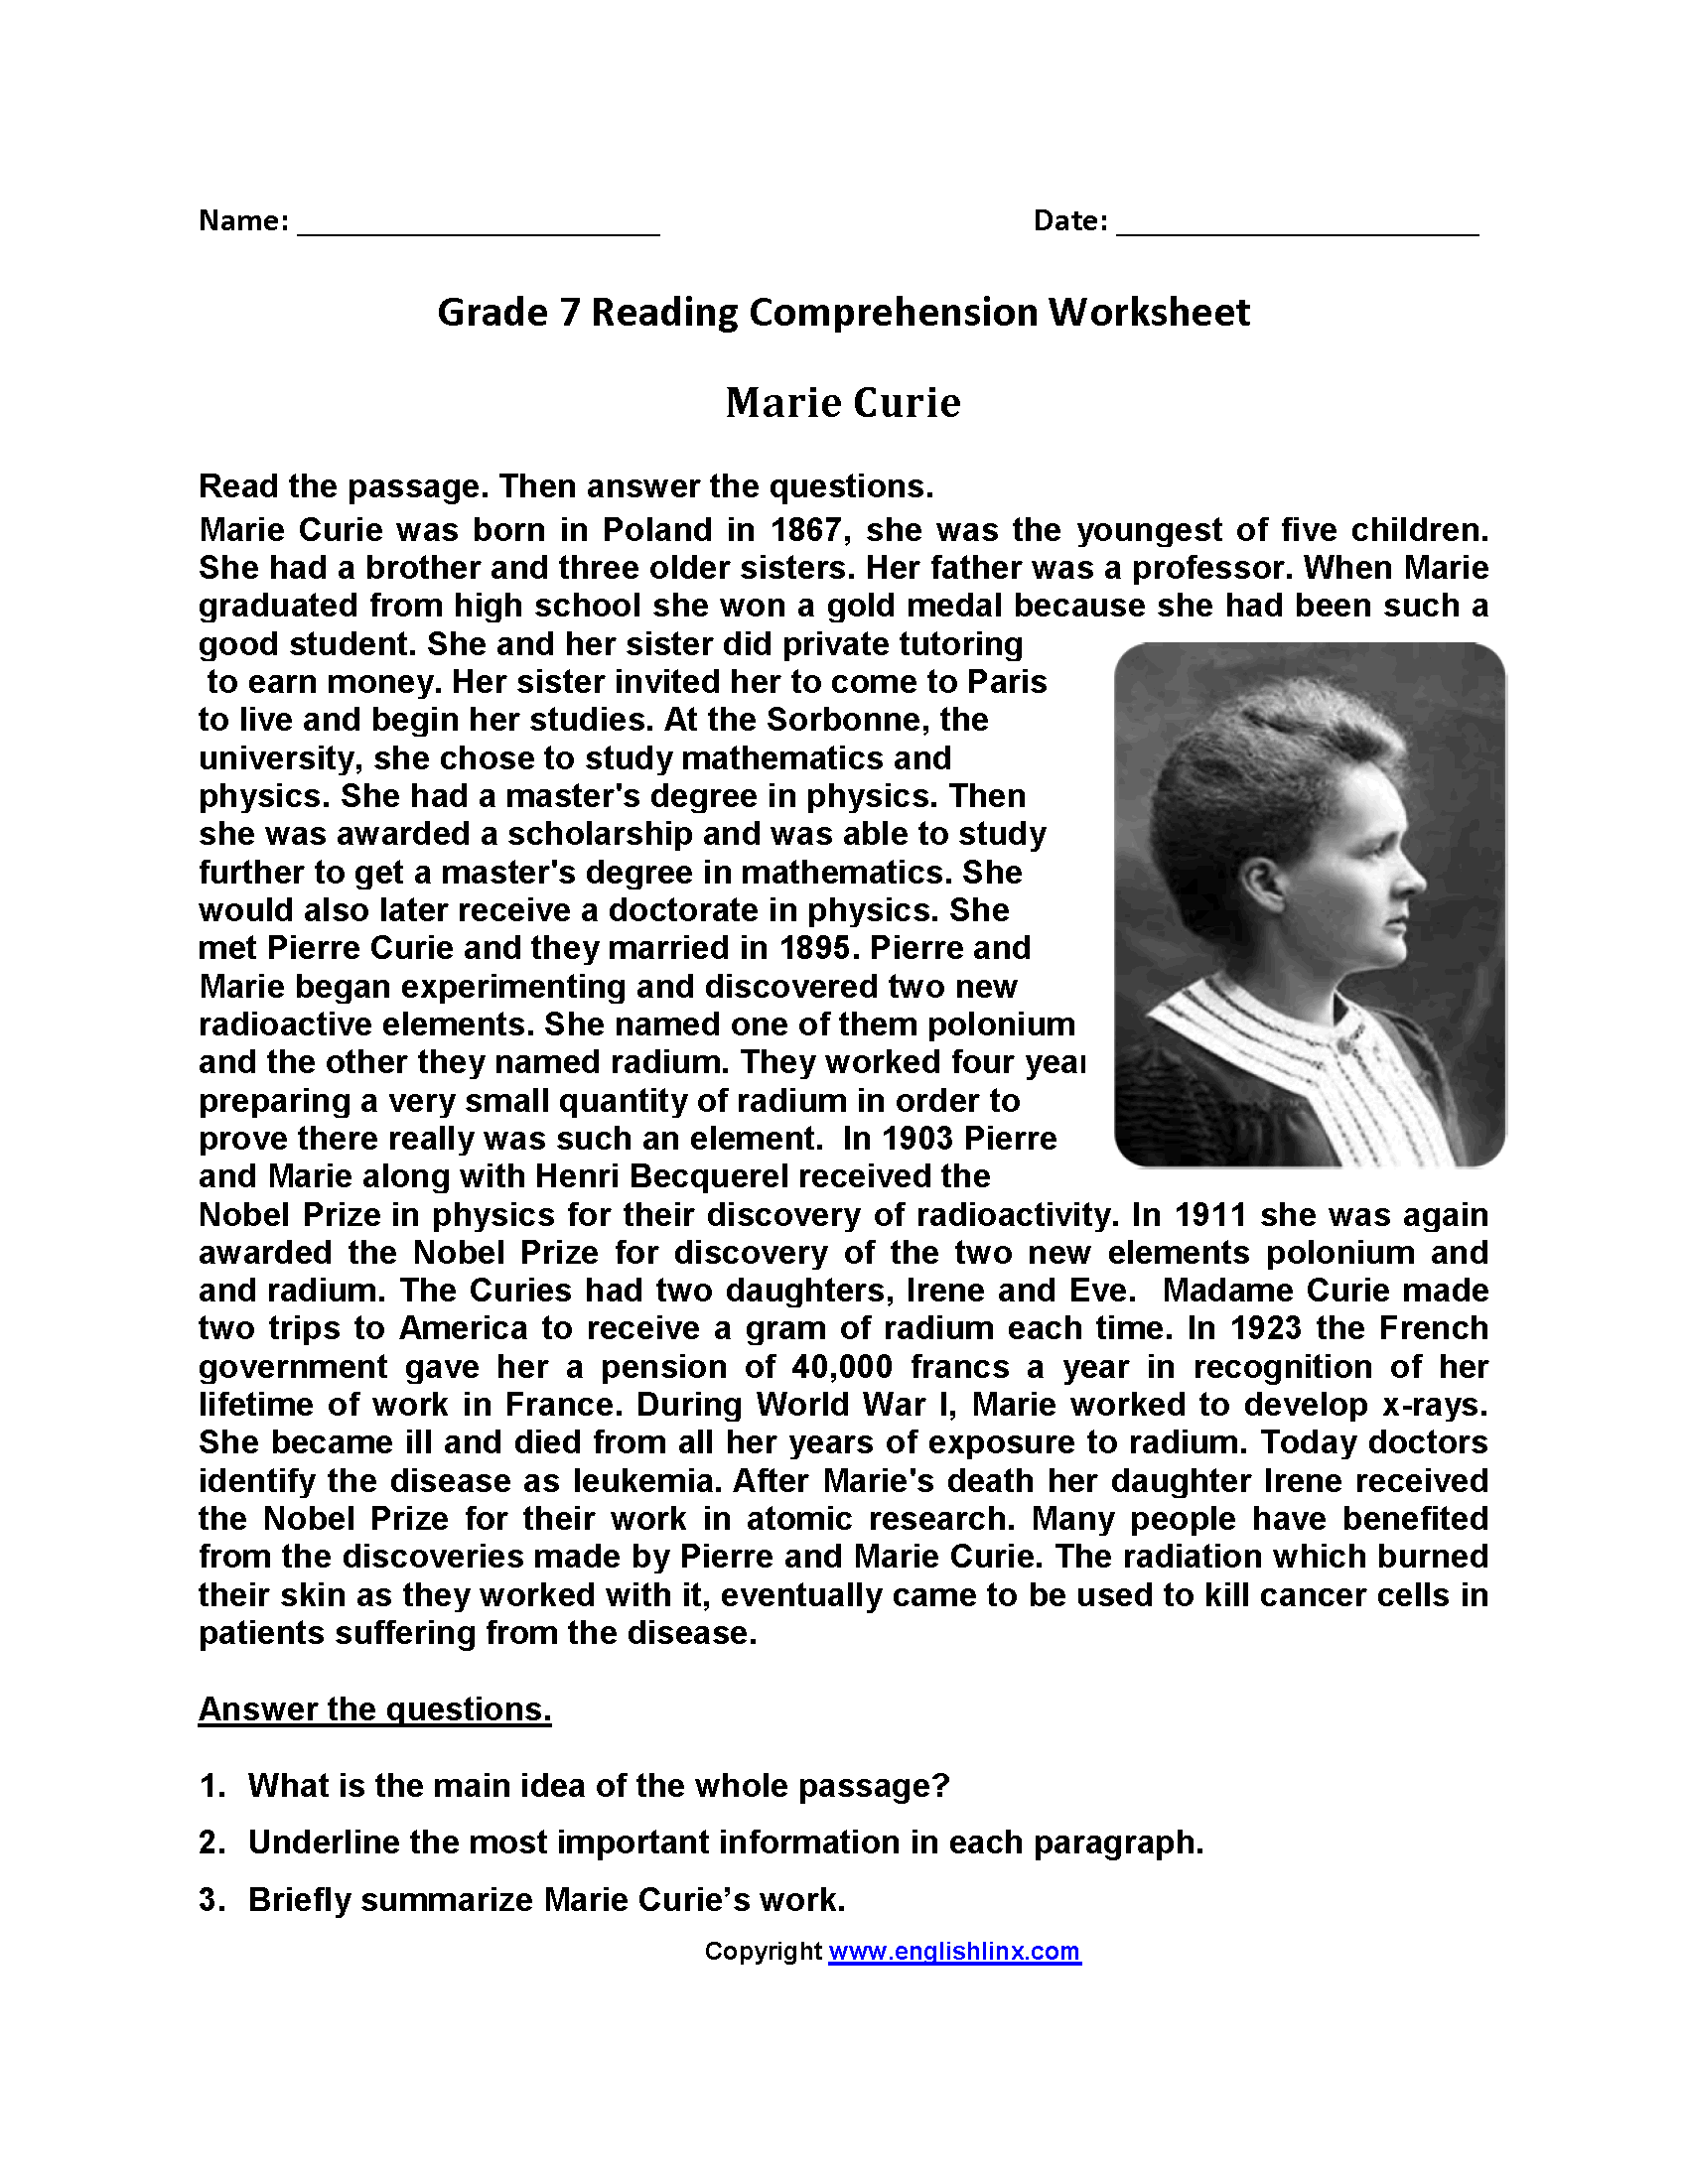 Marie Curie Seventh Grade Reading Worksheets With Images